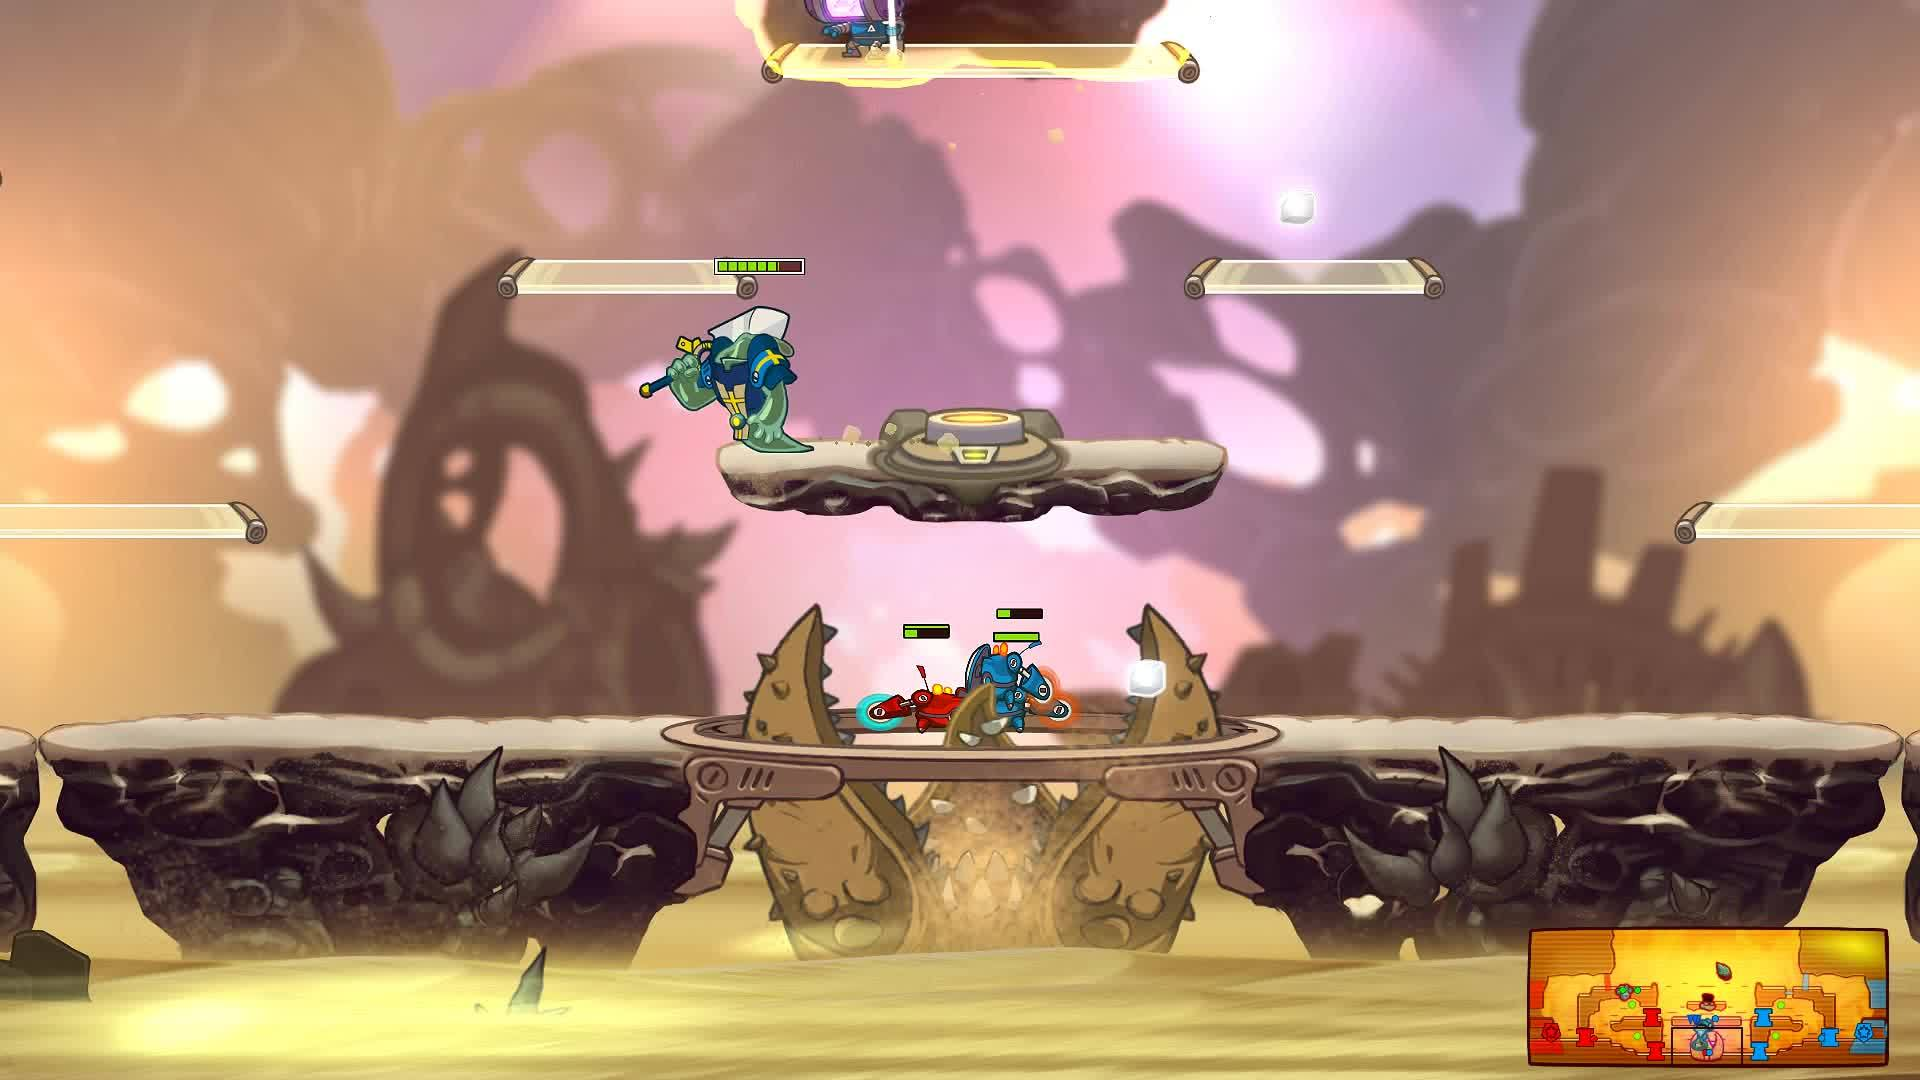 awesomenauts, Smooch your friends! GIFs